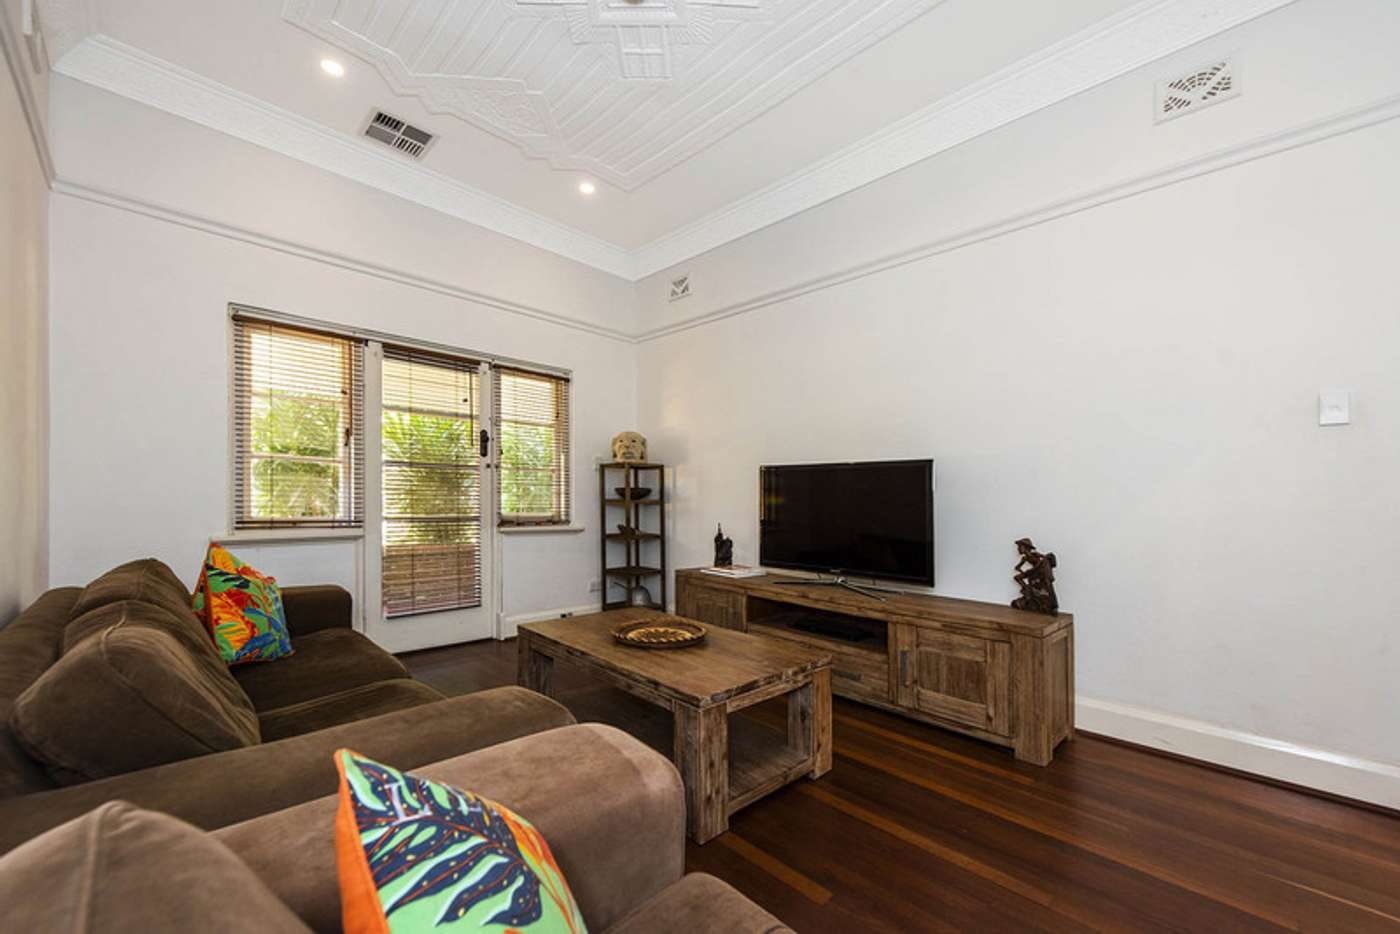 Seventh view of Homely house listing, 21 Kimberley Street, West Leederville WA 6007